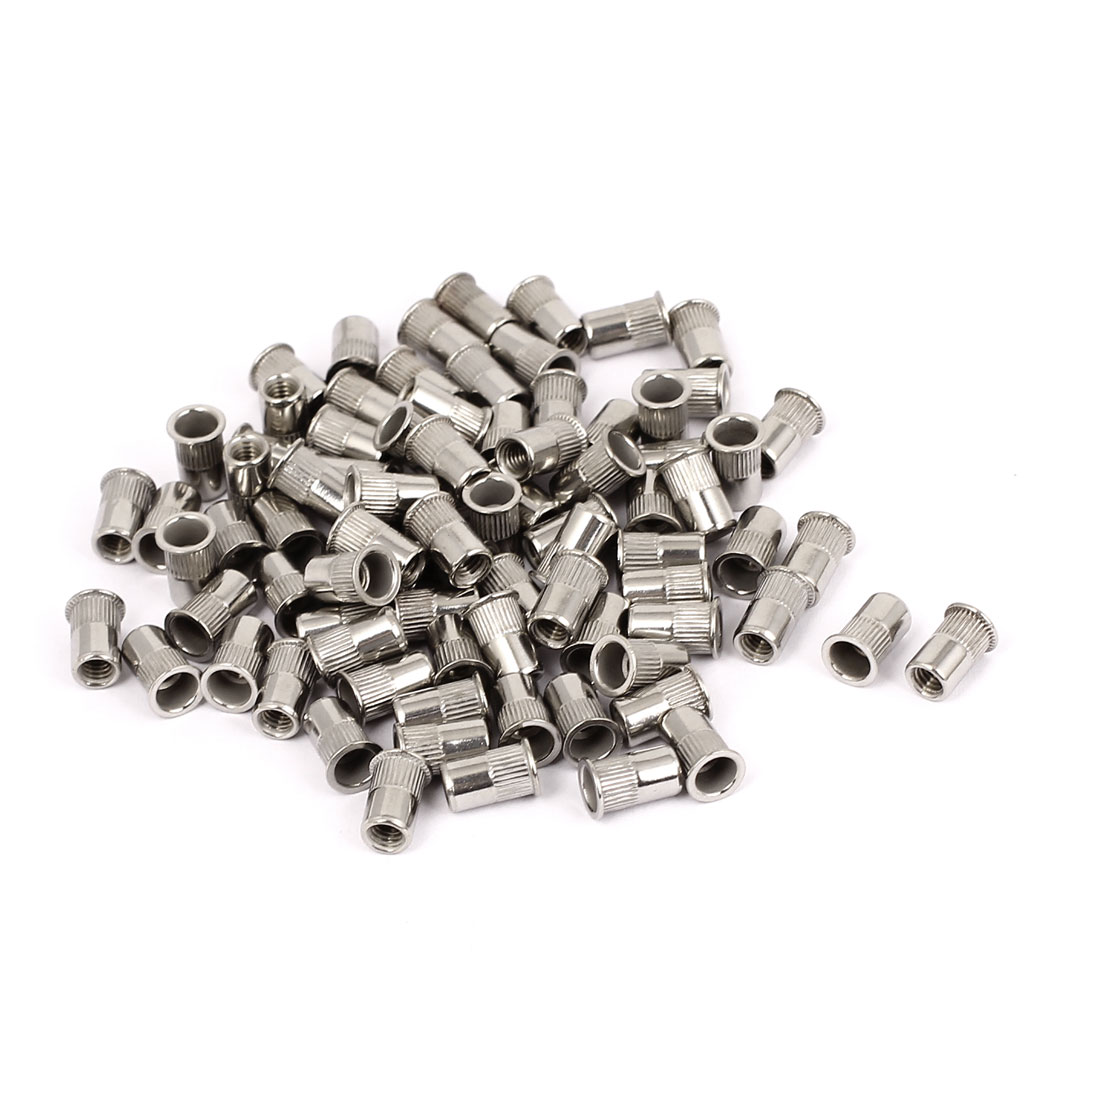 100pcs M4 Stainless Steel Thin Head Threaded Blind Rivet Nuts Nutserts